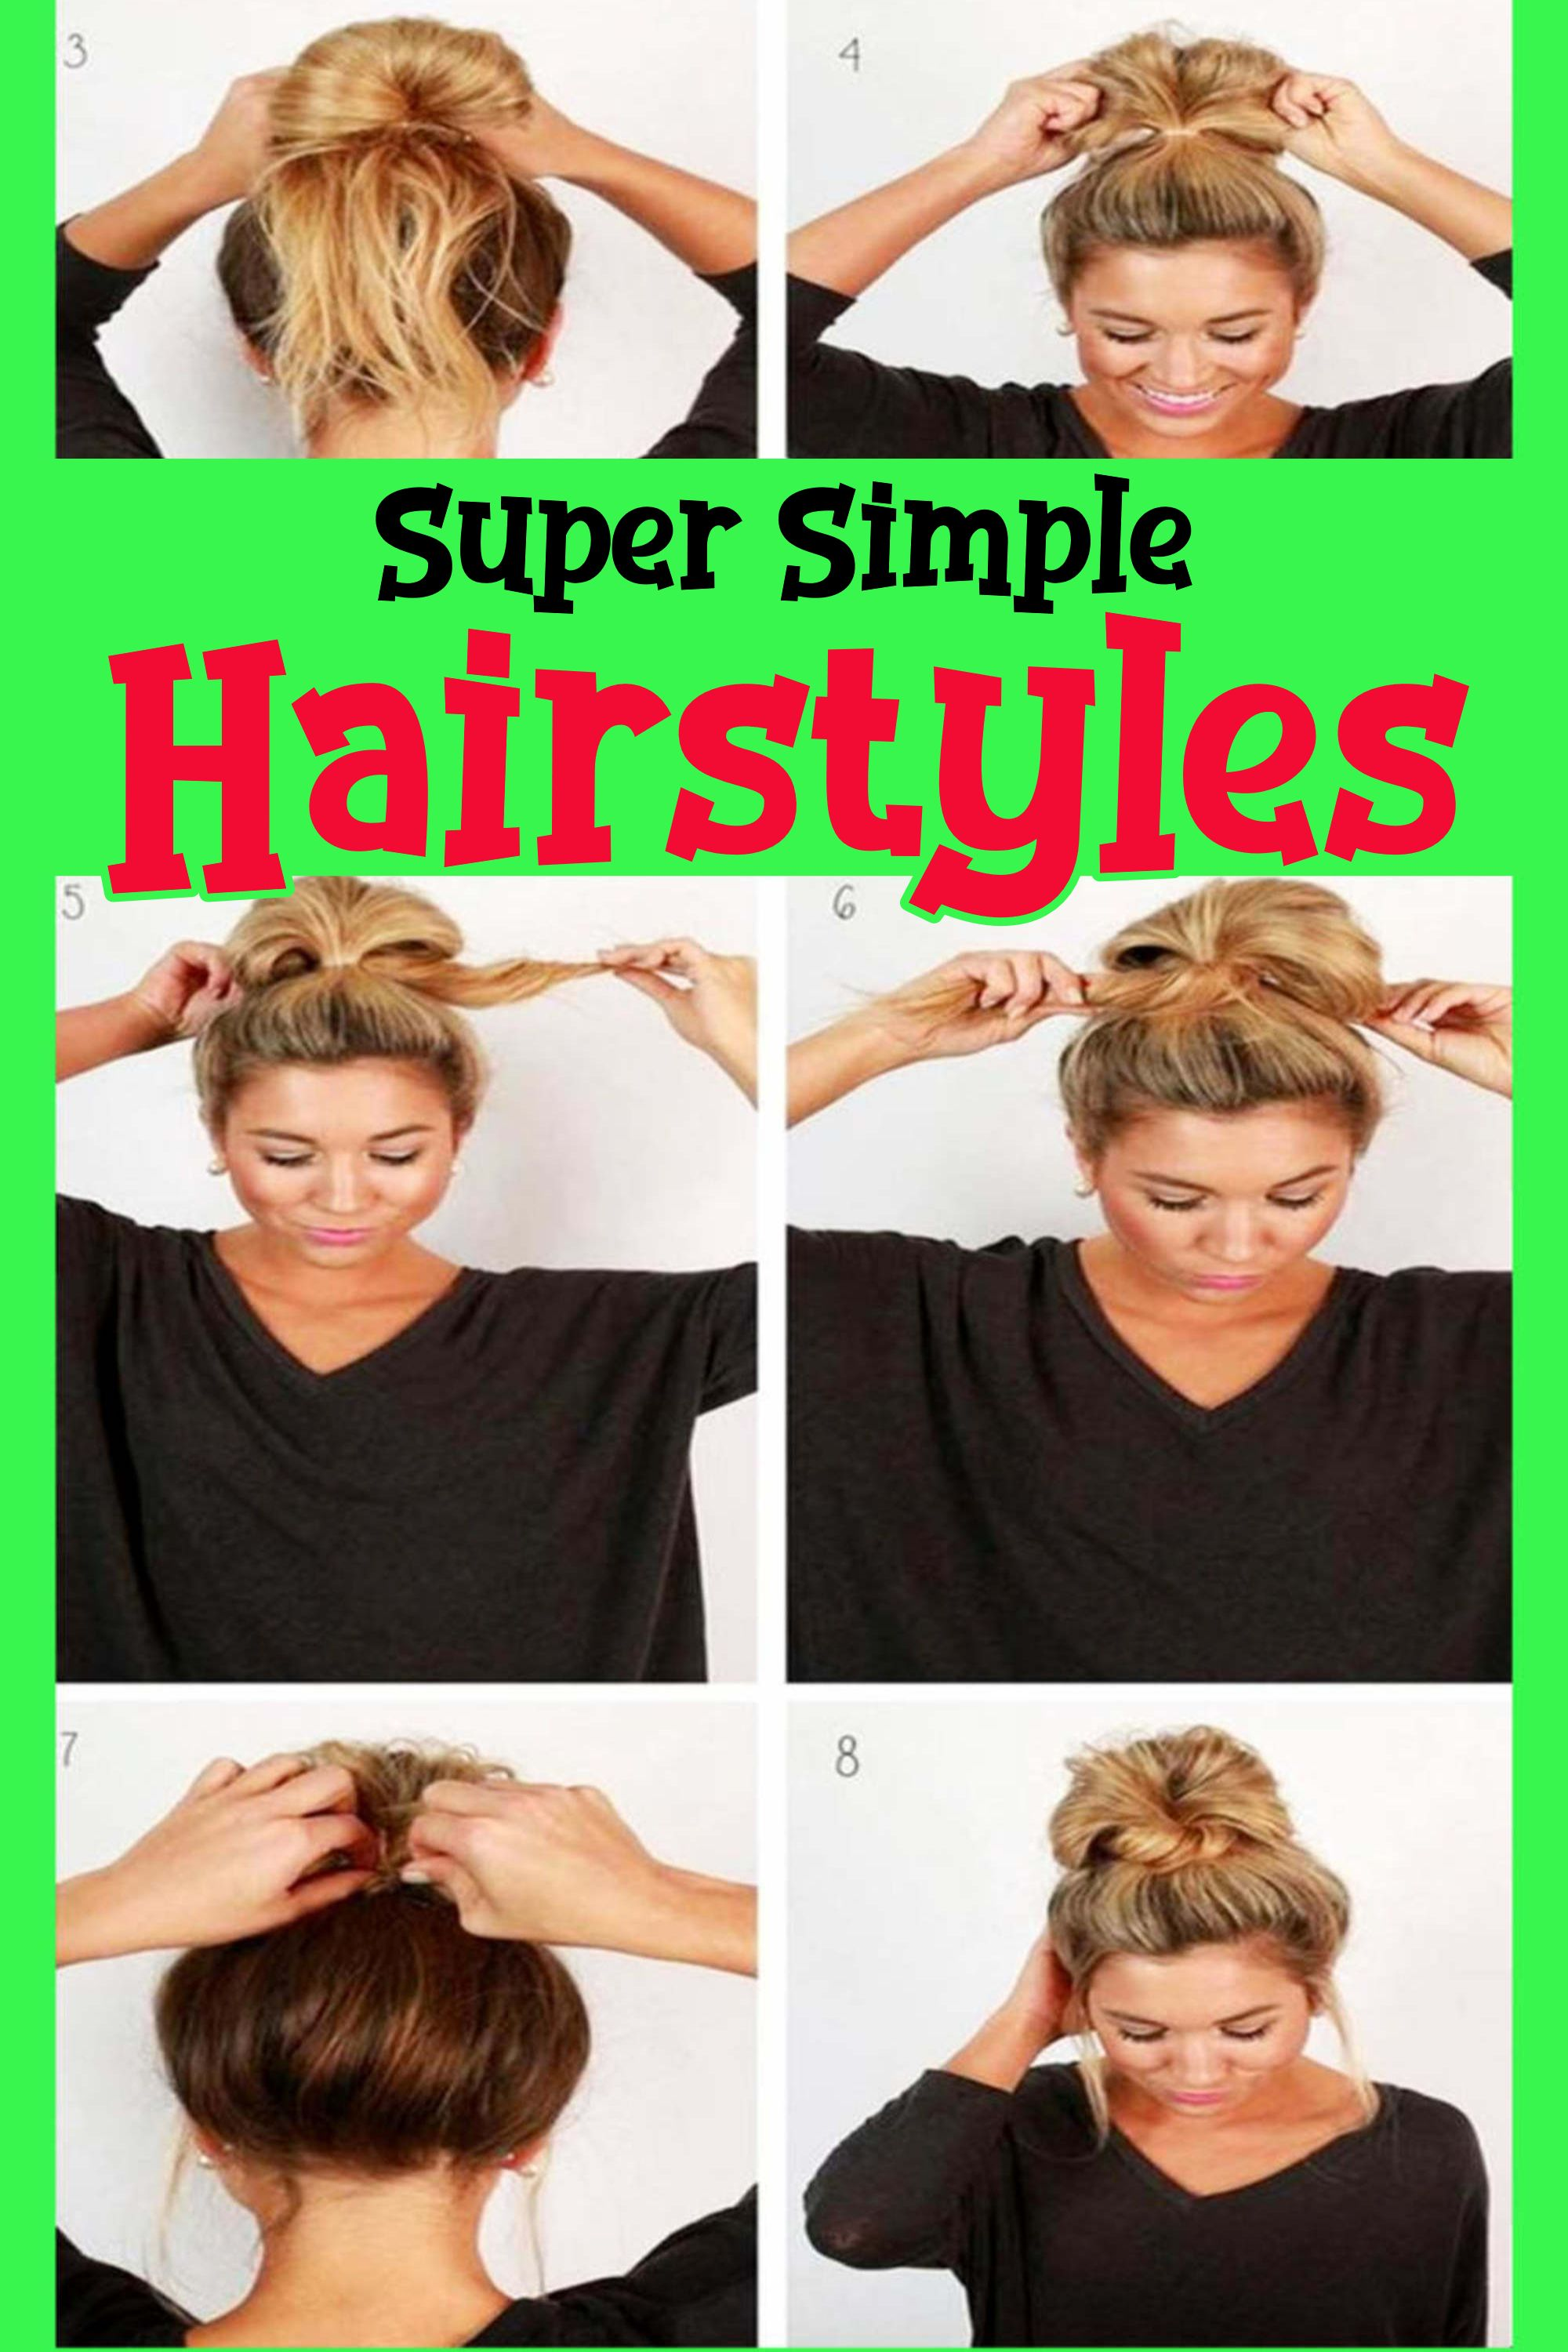 10 Easy Lazy Girl Hairstyle Ideas Step By Step Video Tutorials For Lazy Day Running Late Quick Hairstyles Clever Diy Ideas Lazy Girl Hairstyles Diy Hairstyles Easy Running Late Hairstyles